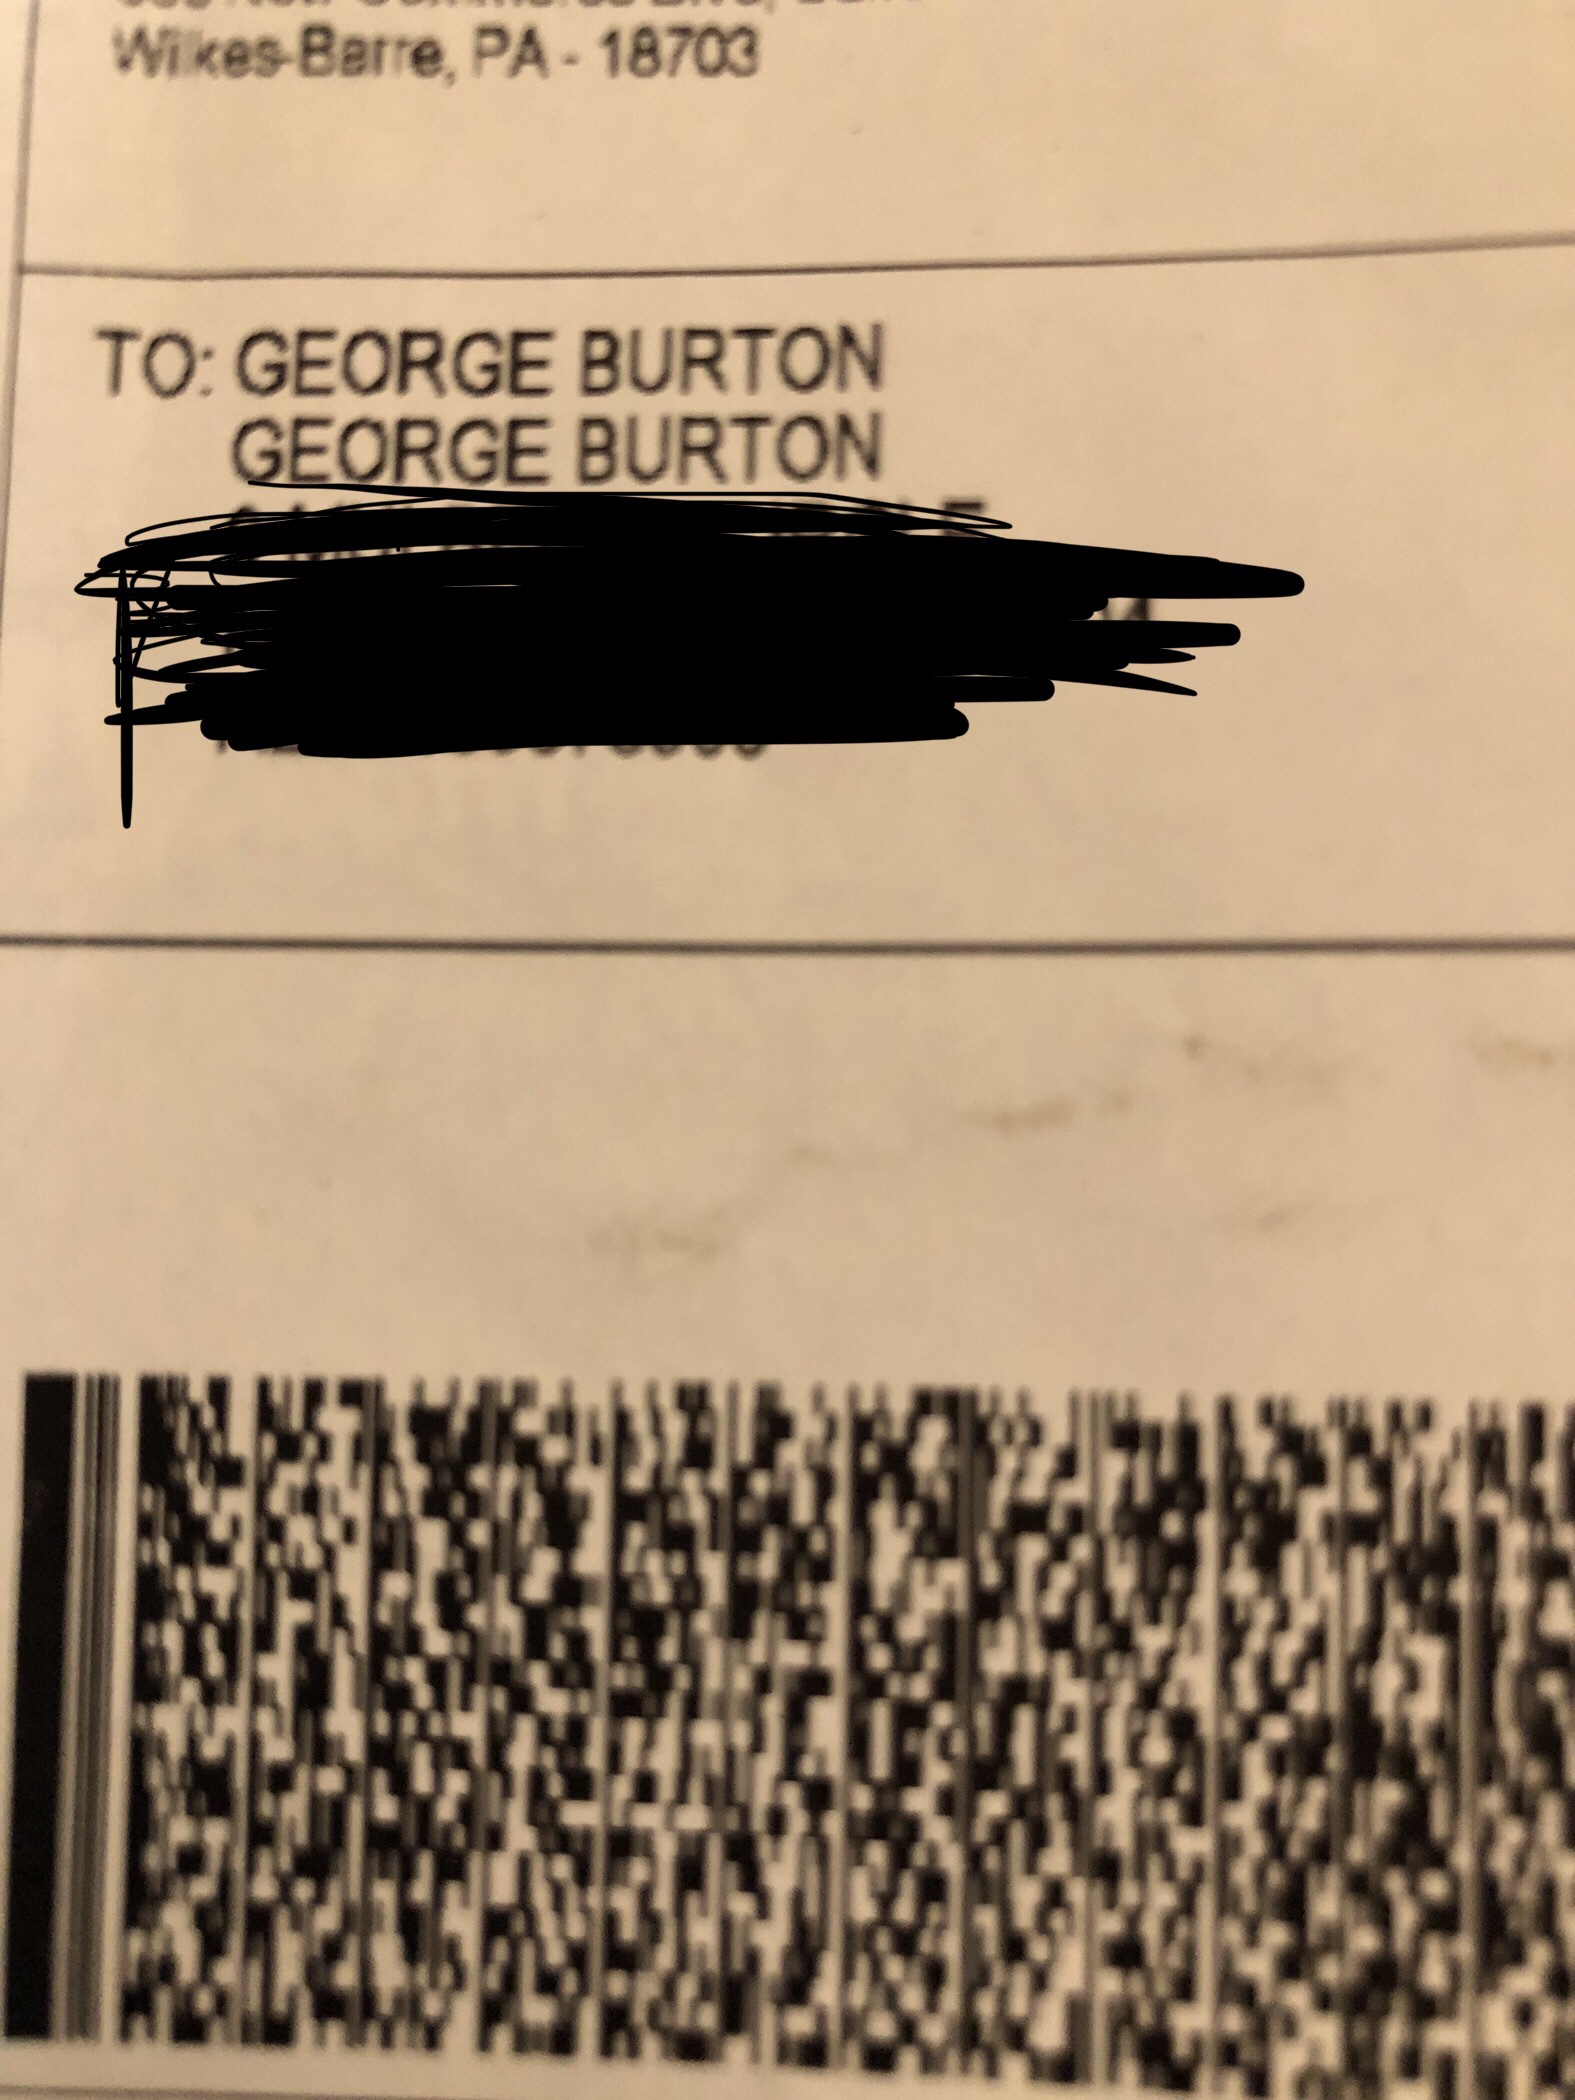 Envelope addressed to George burton